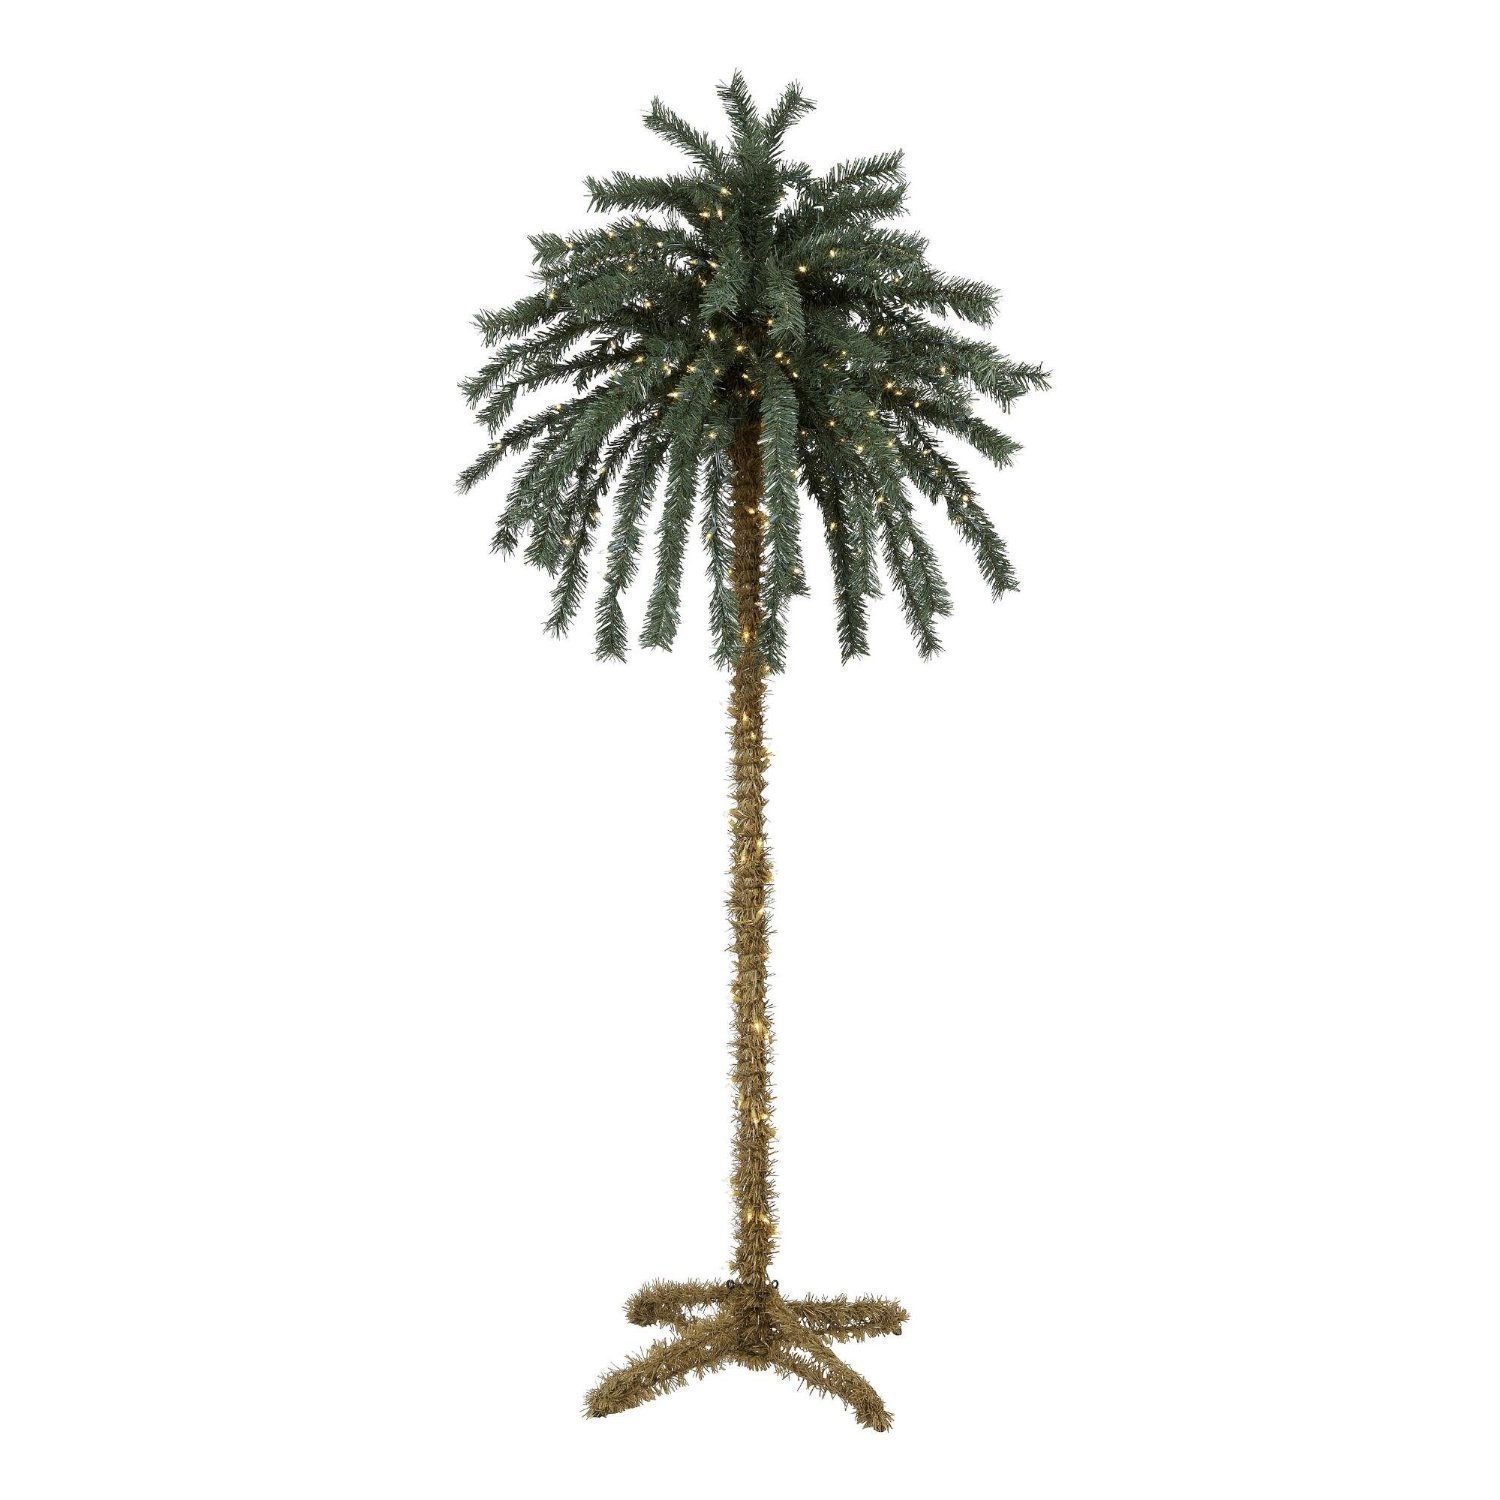 7 Foot Lighted -Christmas- Palm Tree - 300 Lights 78 Tips - Indoor / Outdoor by Nantuckethj